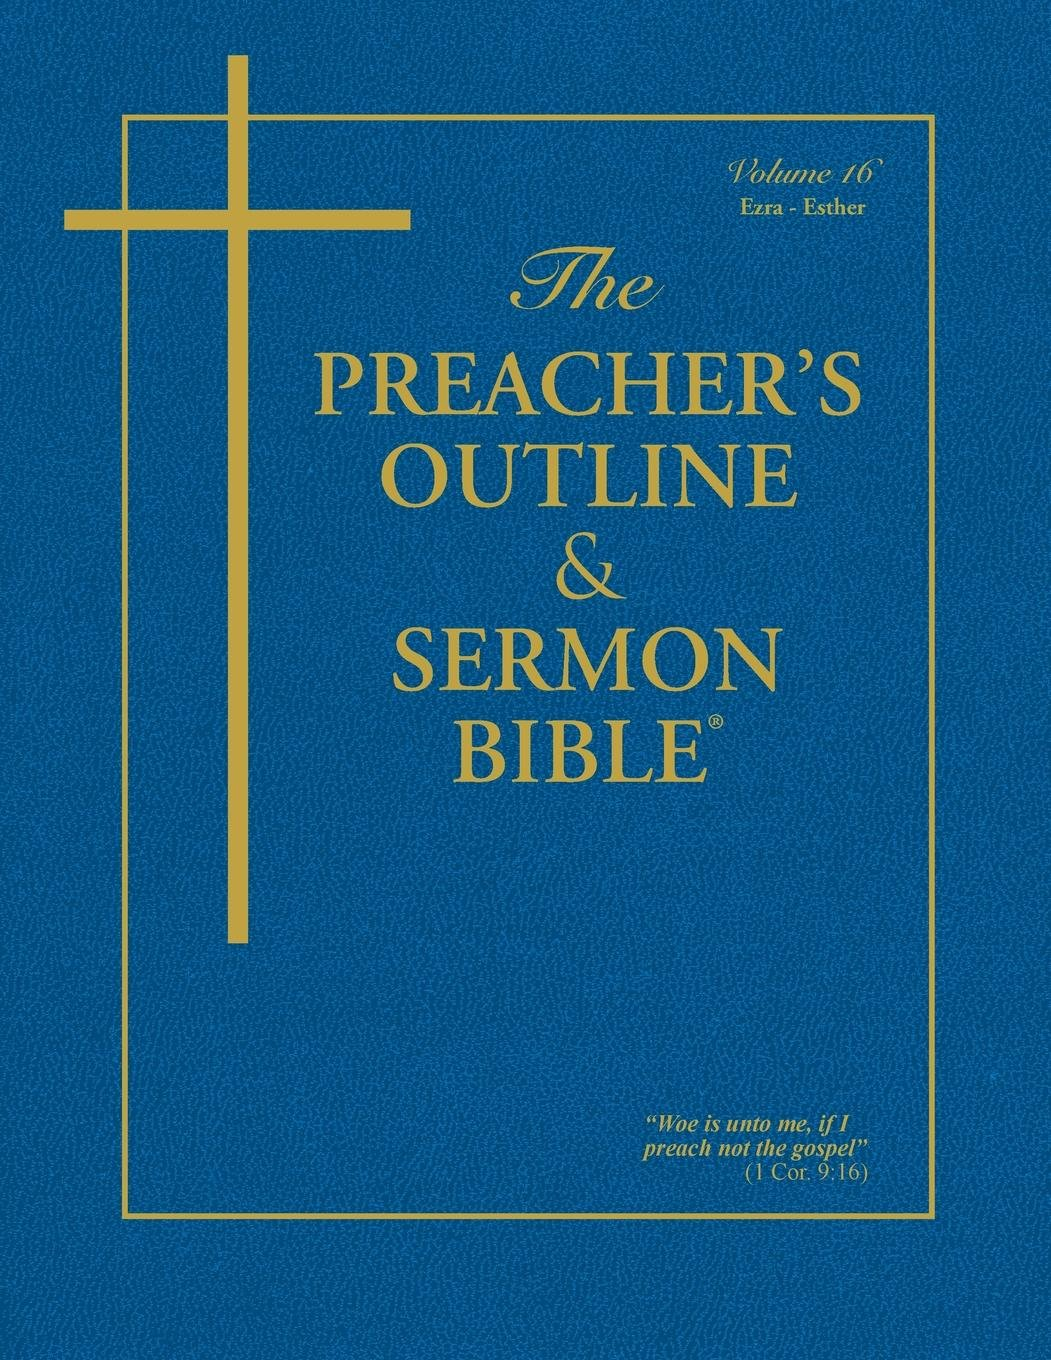 The Preacher's Outline & Sermon Bible: Ezra, Nehemiah, Esther (Preacher's Outline & Sermon Bible-KJV) by Leadership Ministries Worldwide